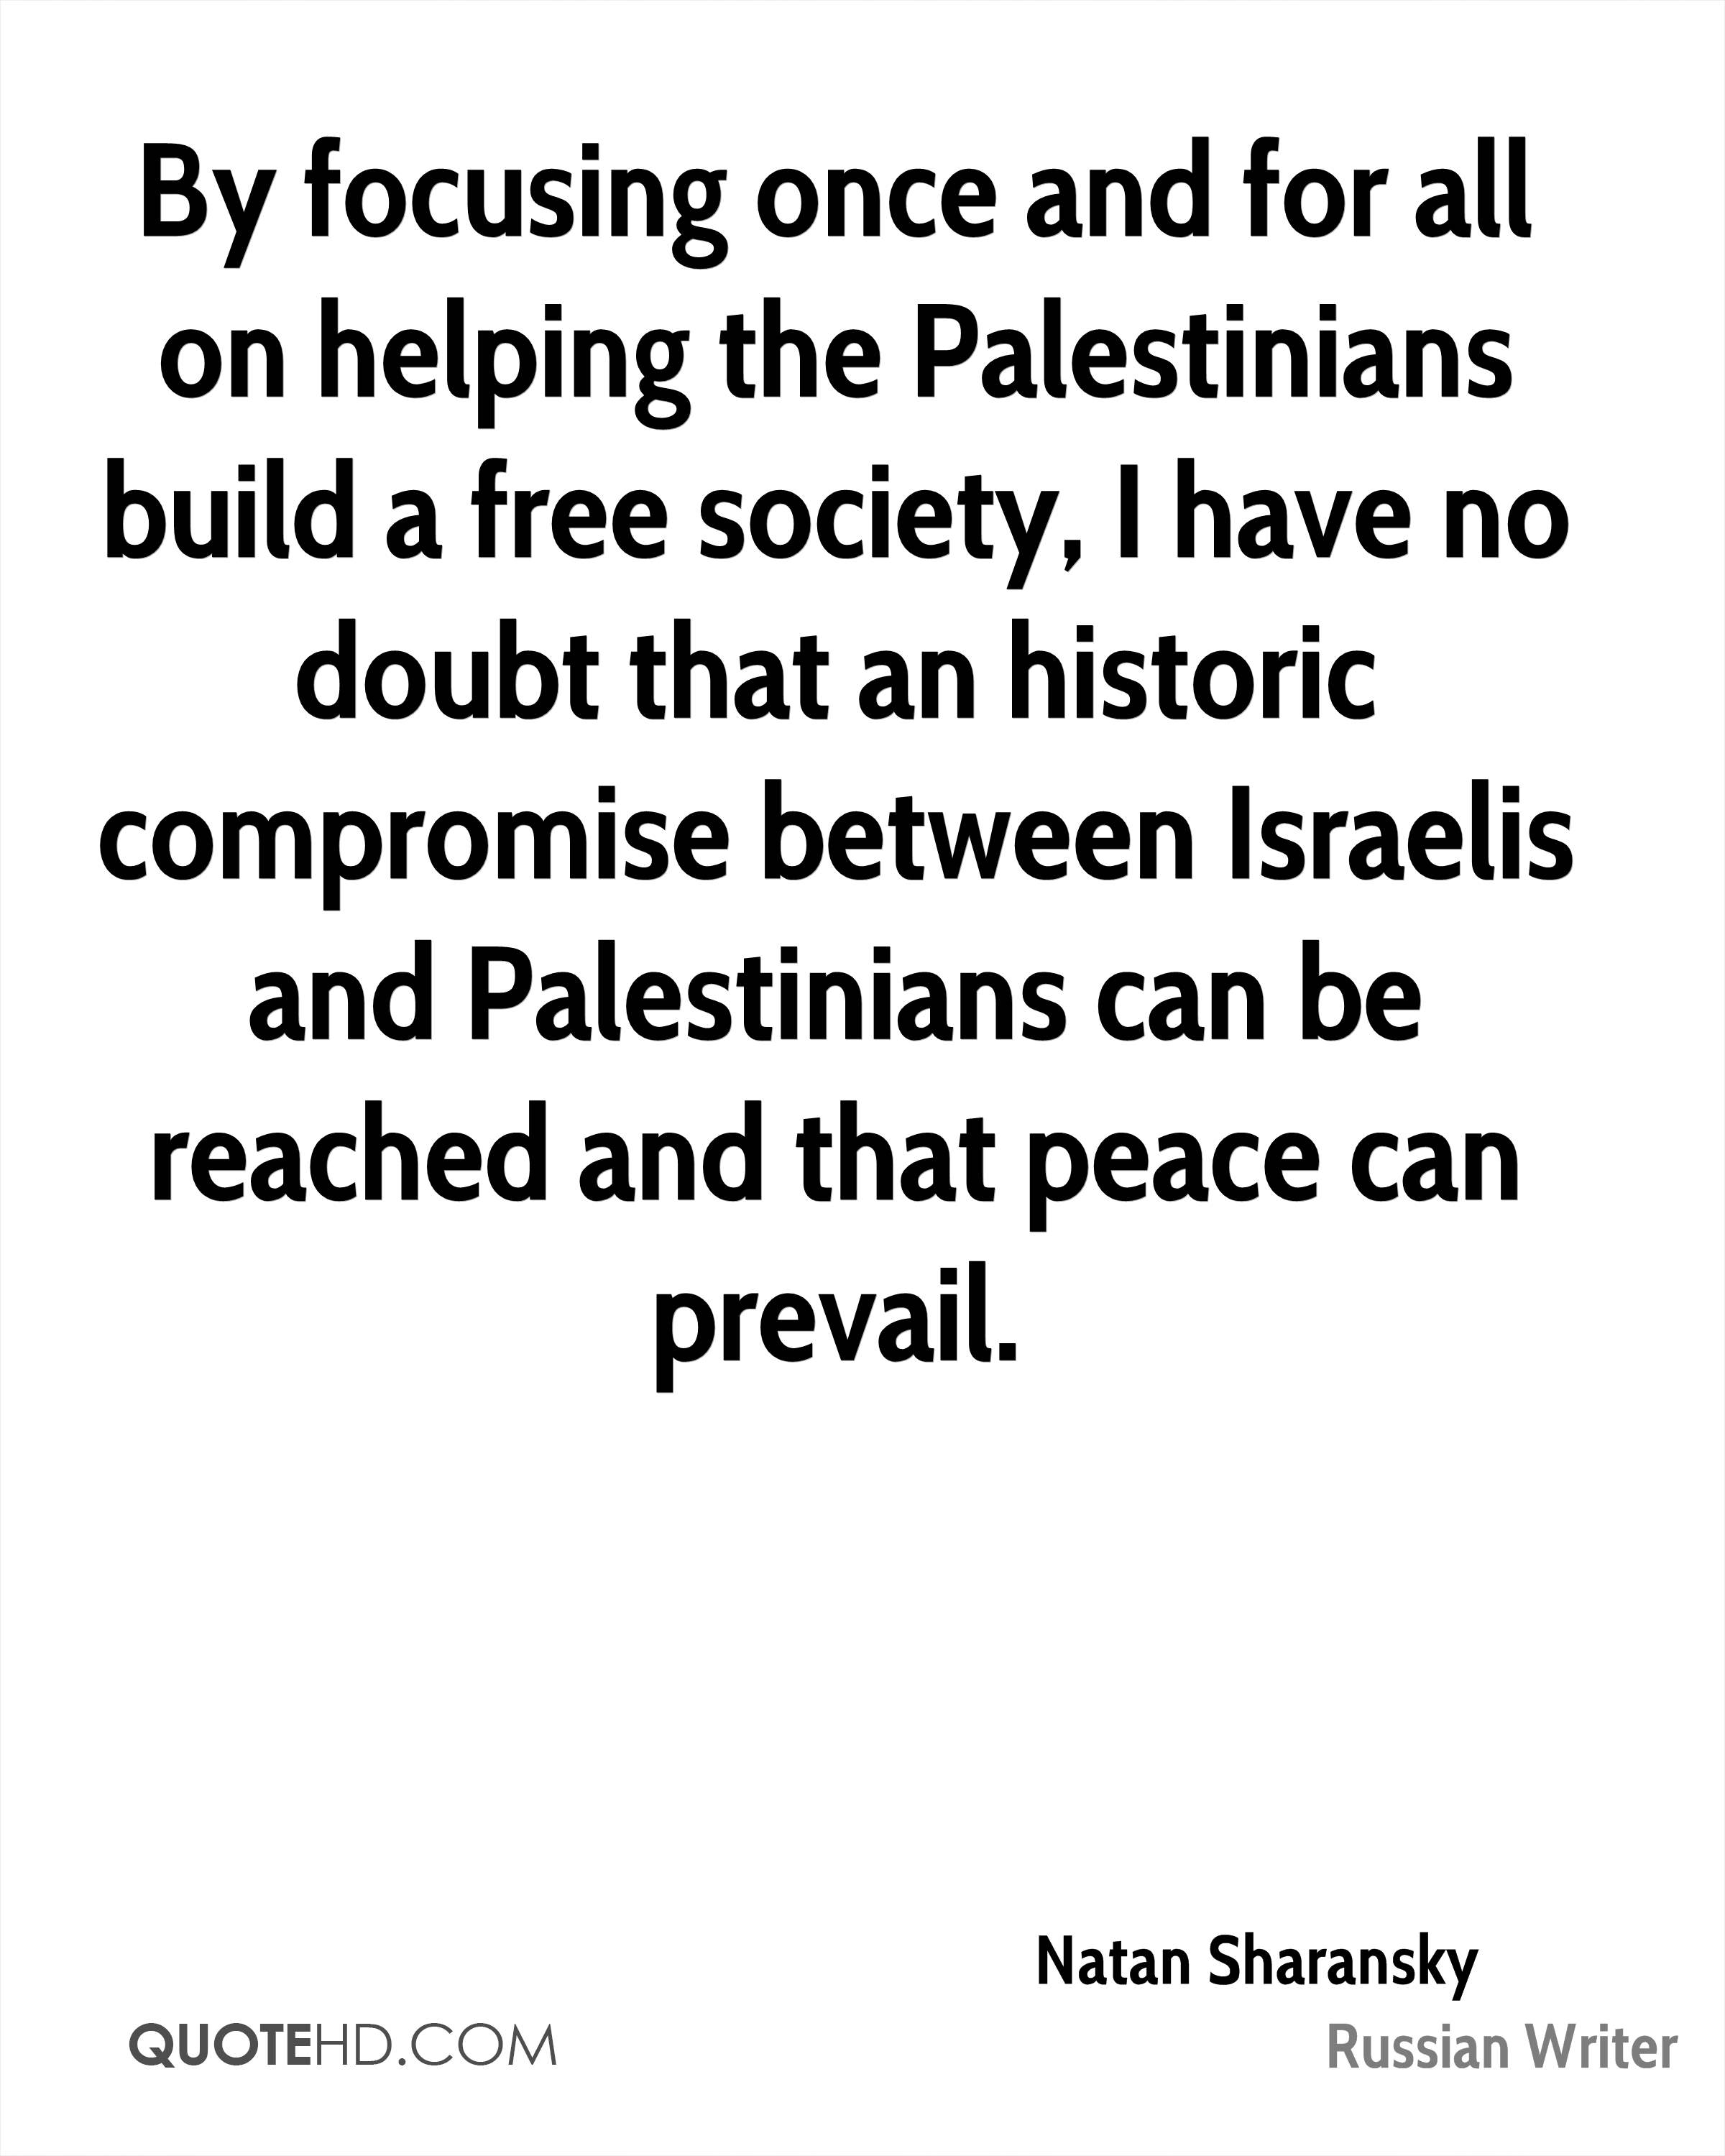 By focusing once and for all on helping the Palestinians build a free society, I have no doubt that an historic compromise between Israelis and Palestinians can be reached and that peace can prevail.